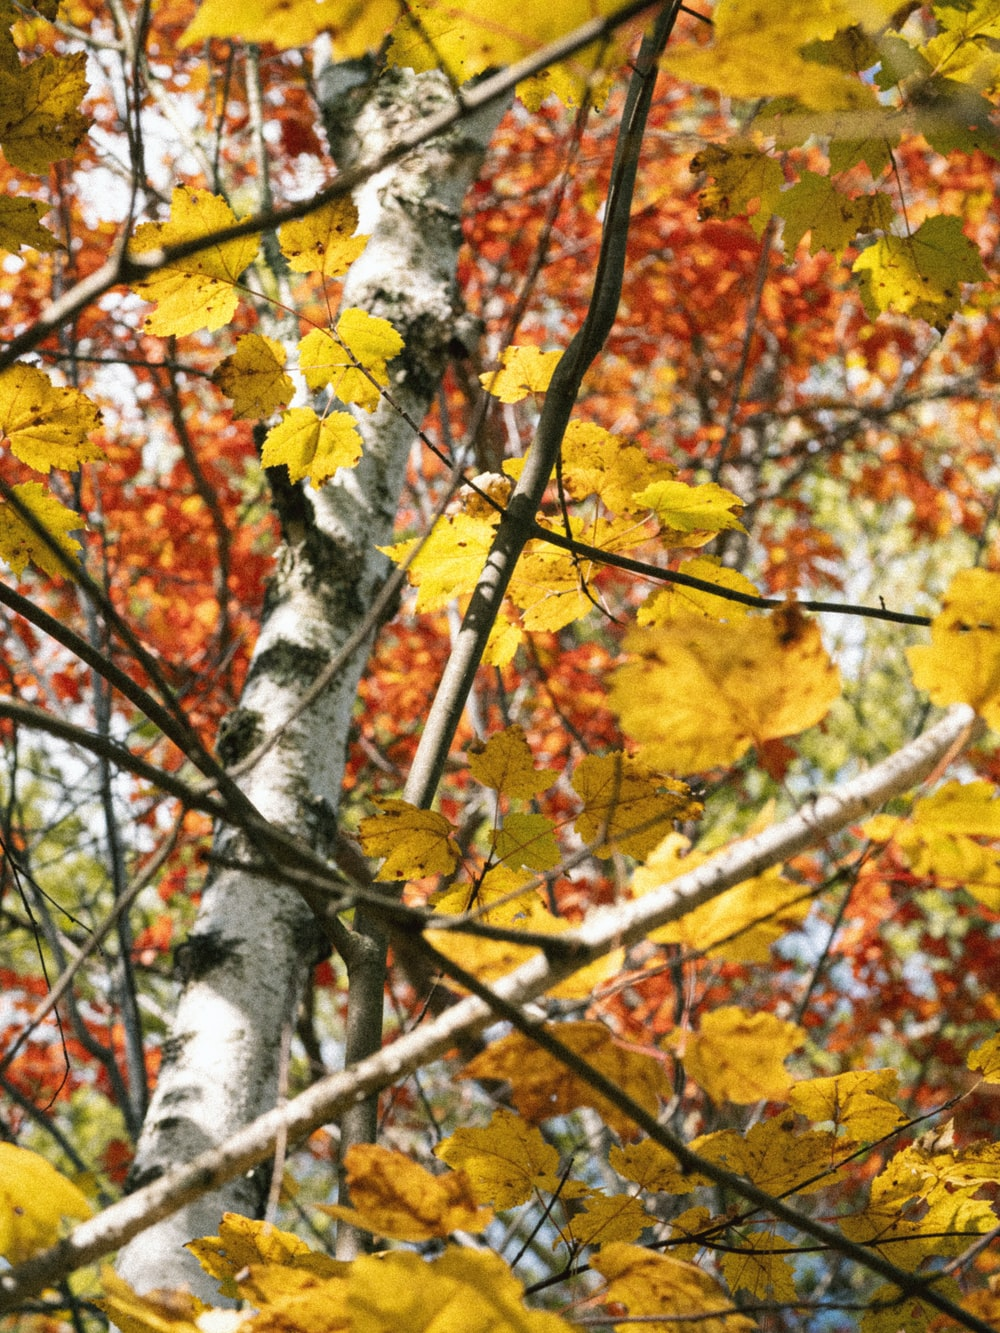 yellow and brown maple leaves on tree branch